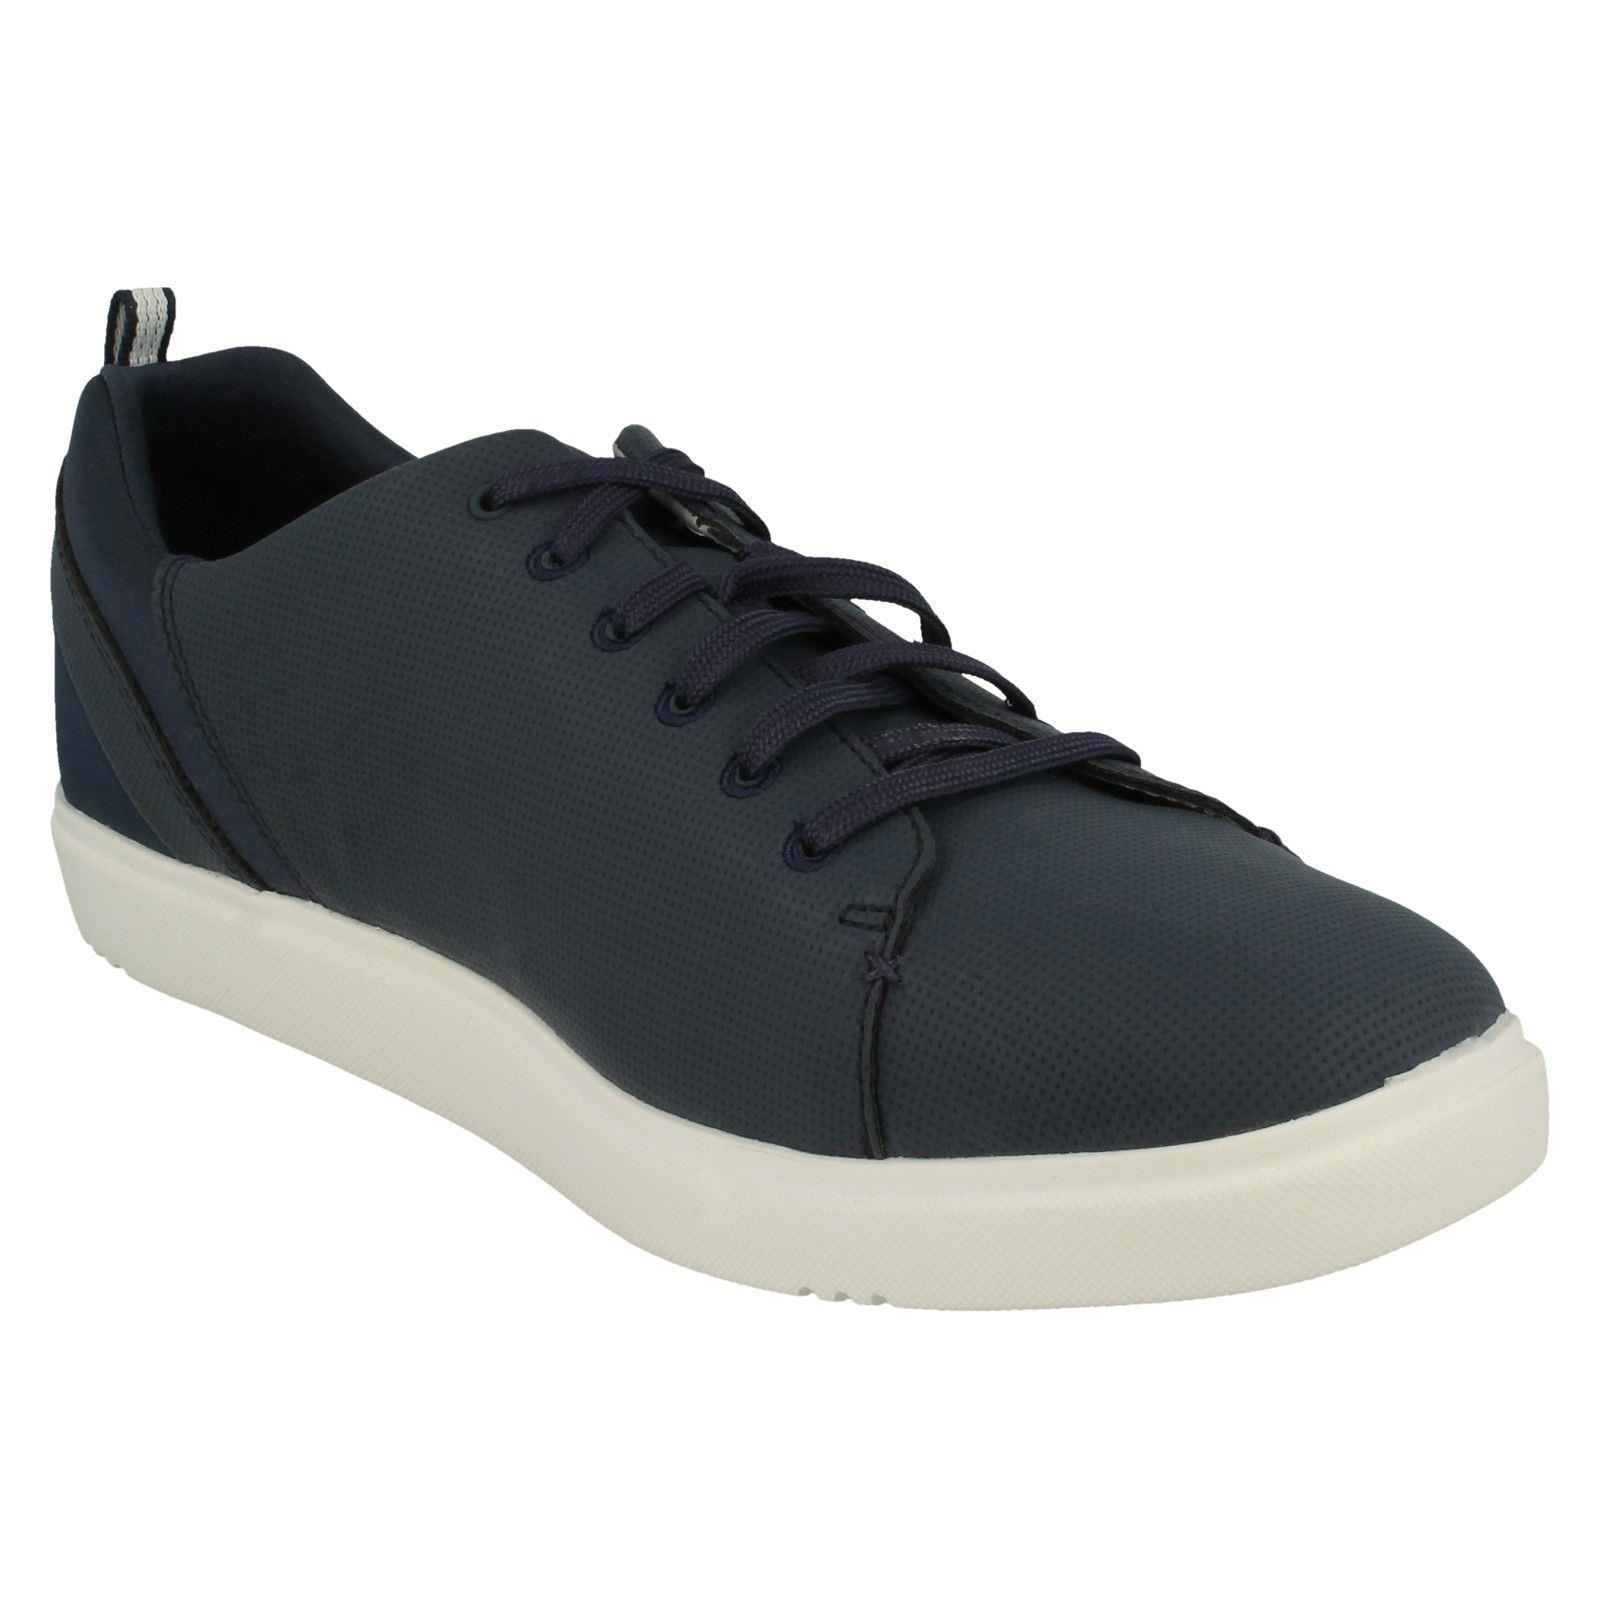 Men's Clarks Cloudsteppers Lace Up Trainer Shoes Style - Step Verve Lo